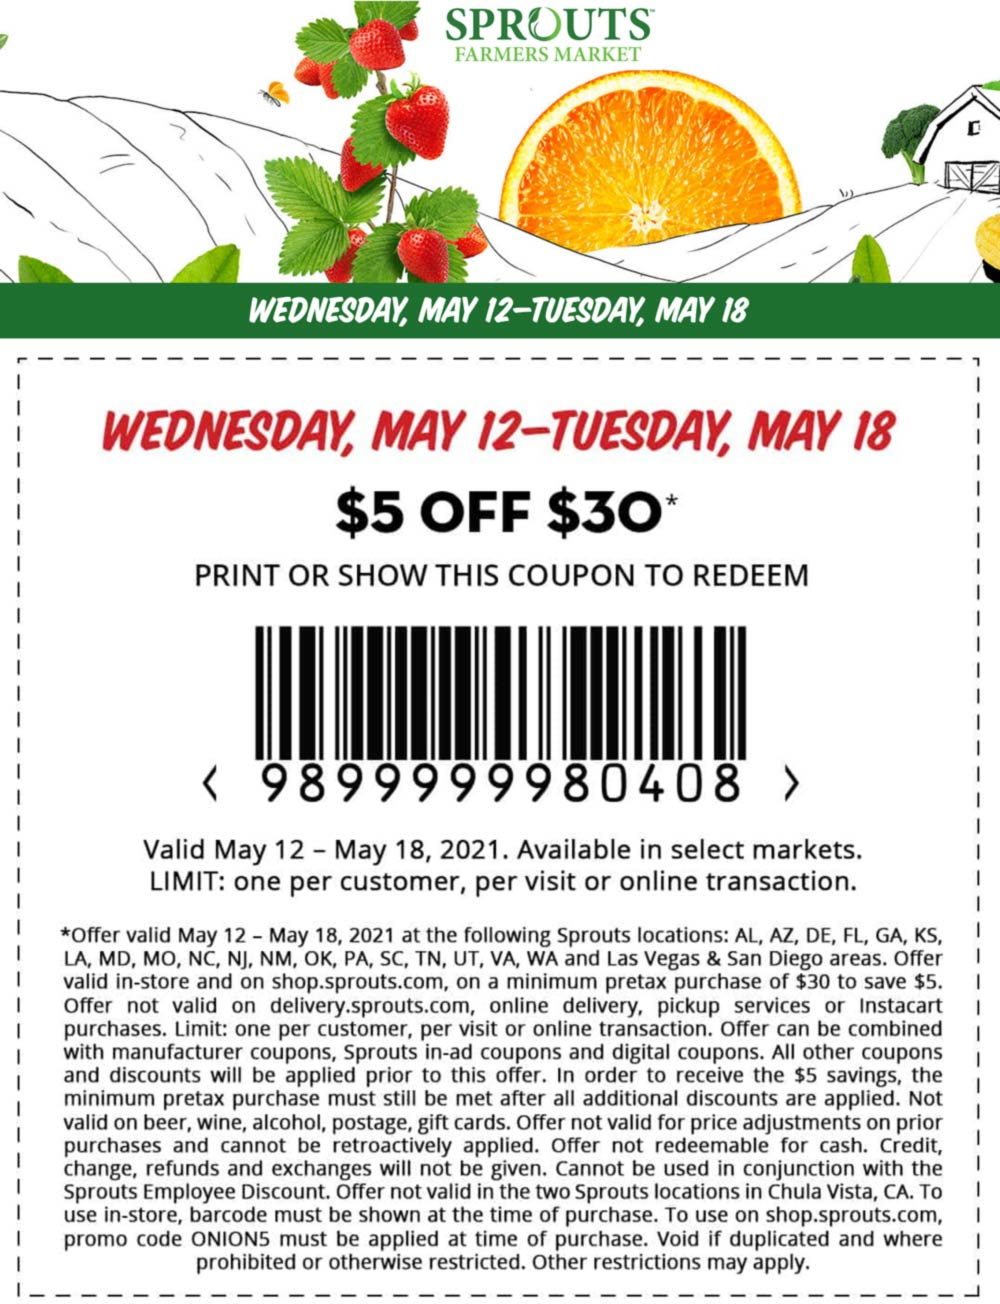 Sprouts stores Coupon  $5 off $30 at Sprouts Farmers Market grocery, or online via promo code ONION5 #sprouts